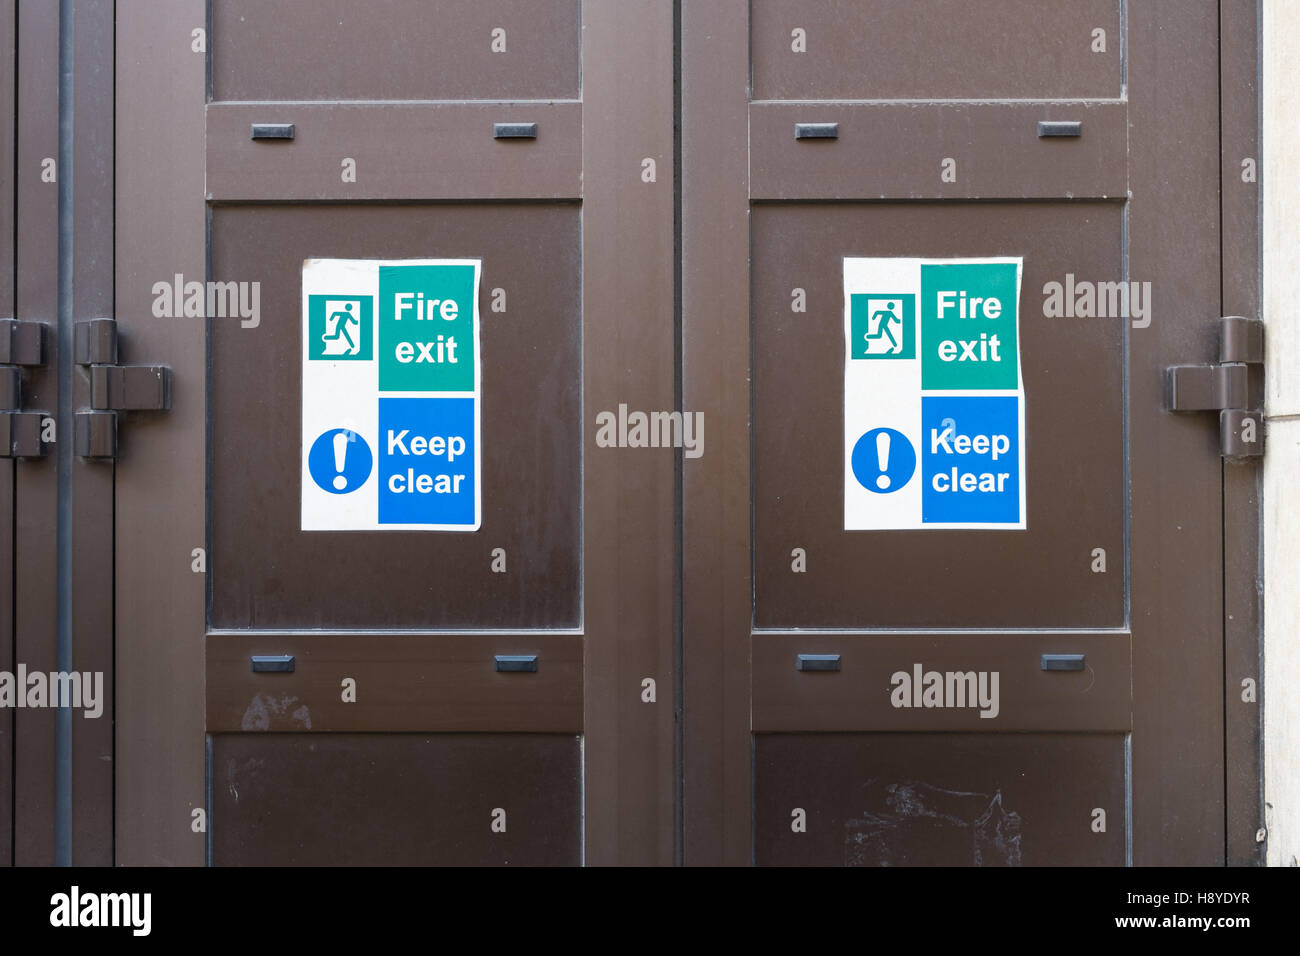 """Steel double doors with sign saying """"Fire exit, keep clear"""" Stock Photo"""